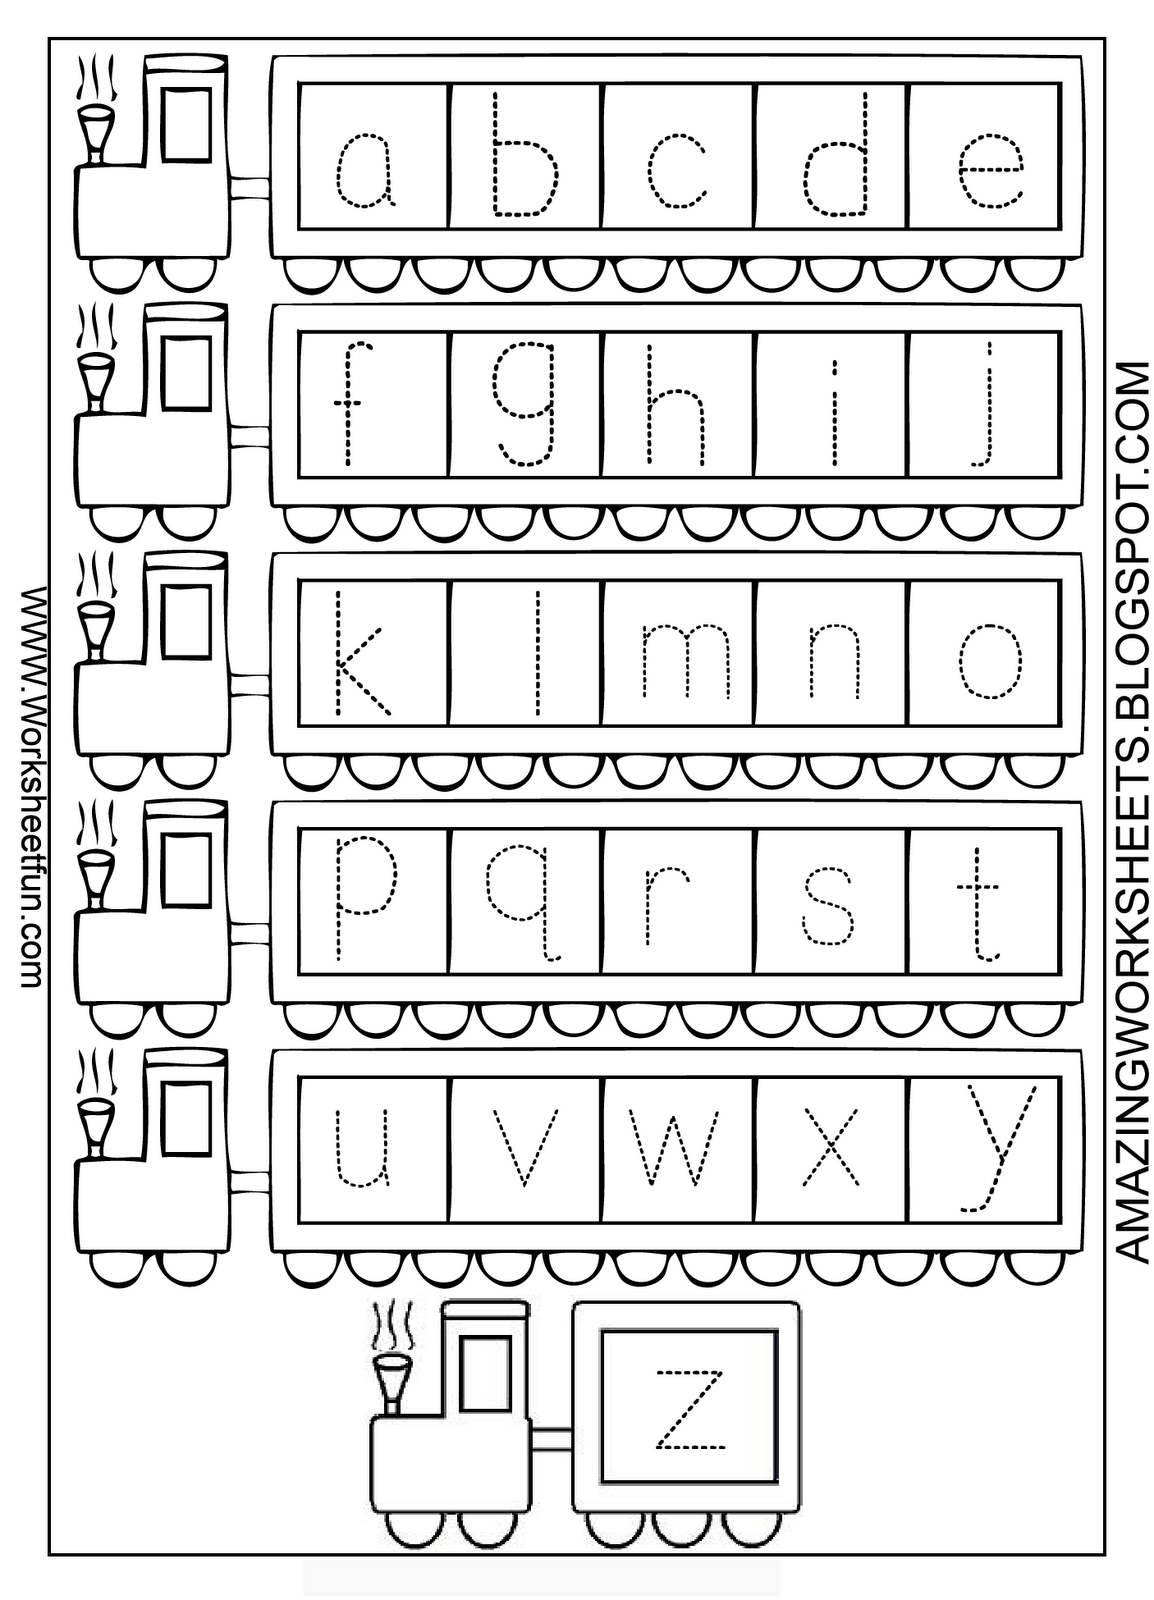 Worksheet Abc Tracing Worksheets For Kindergarten 1000 images about letter practice sheets on pinterest alphabet worksheets for kindergarten and small lette